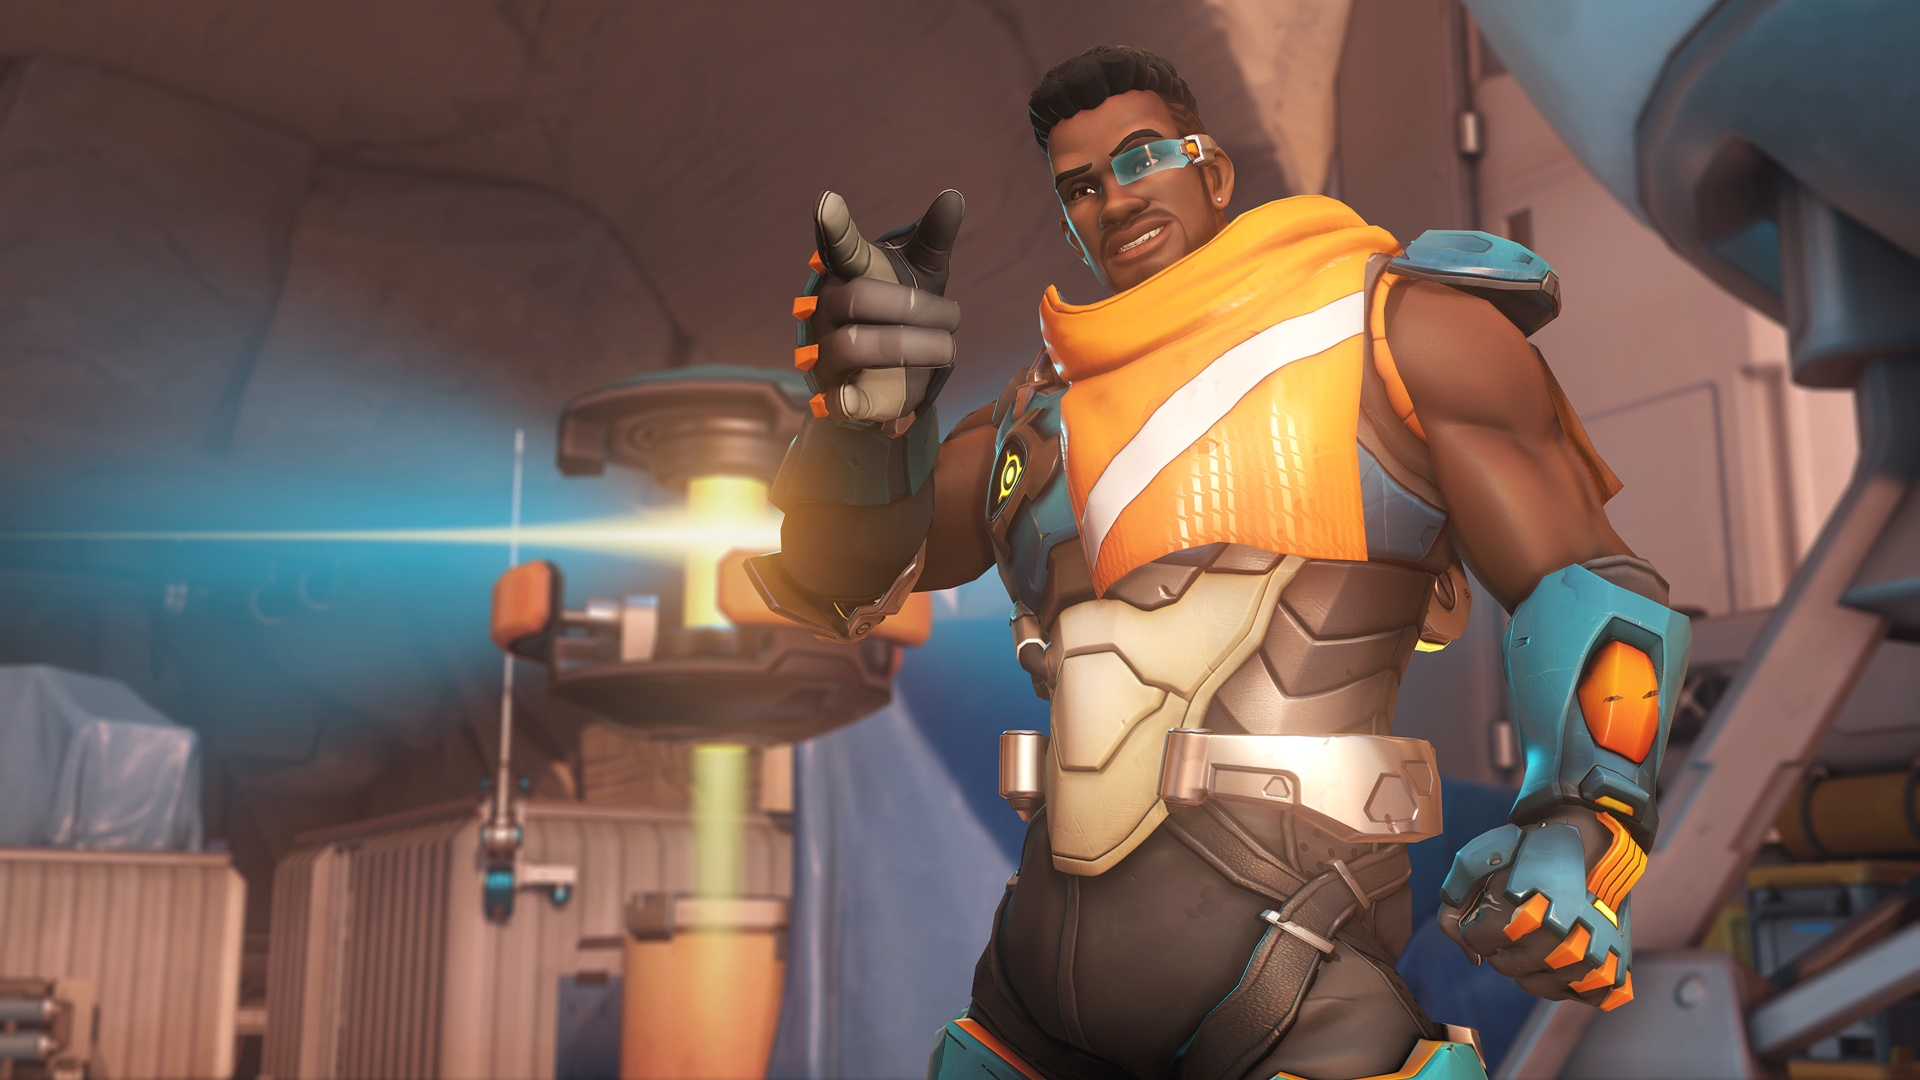 Here's Overwatch 2's new-look Sombra and Baptiste